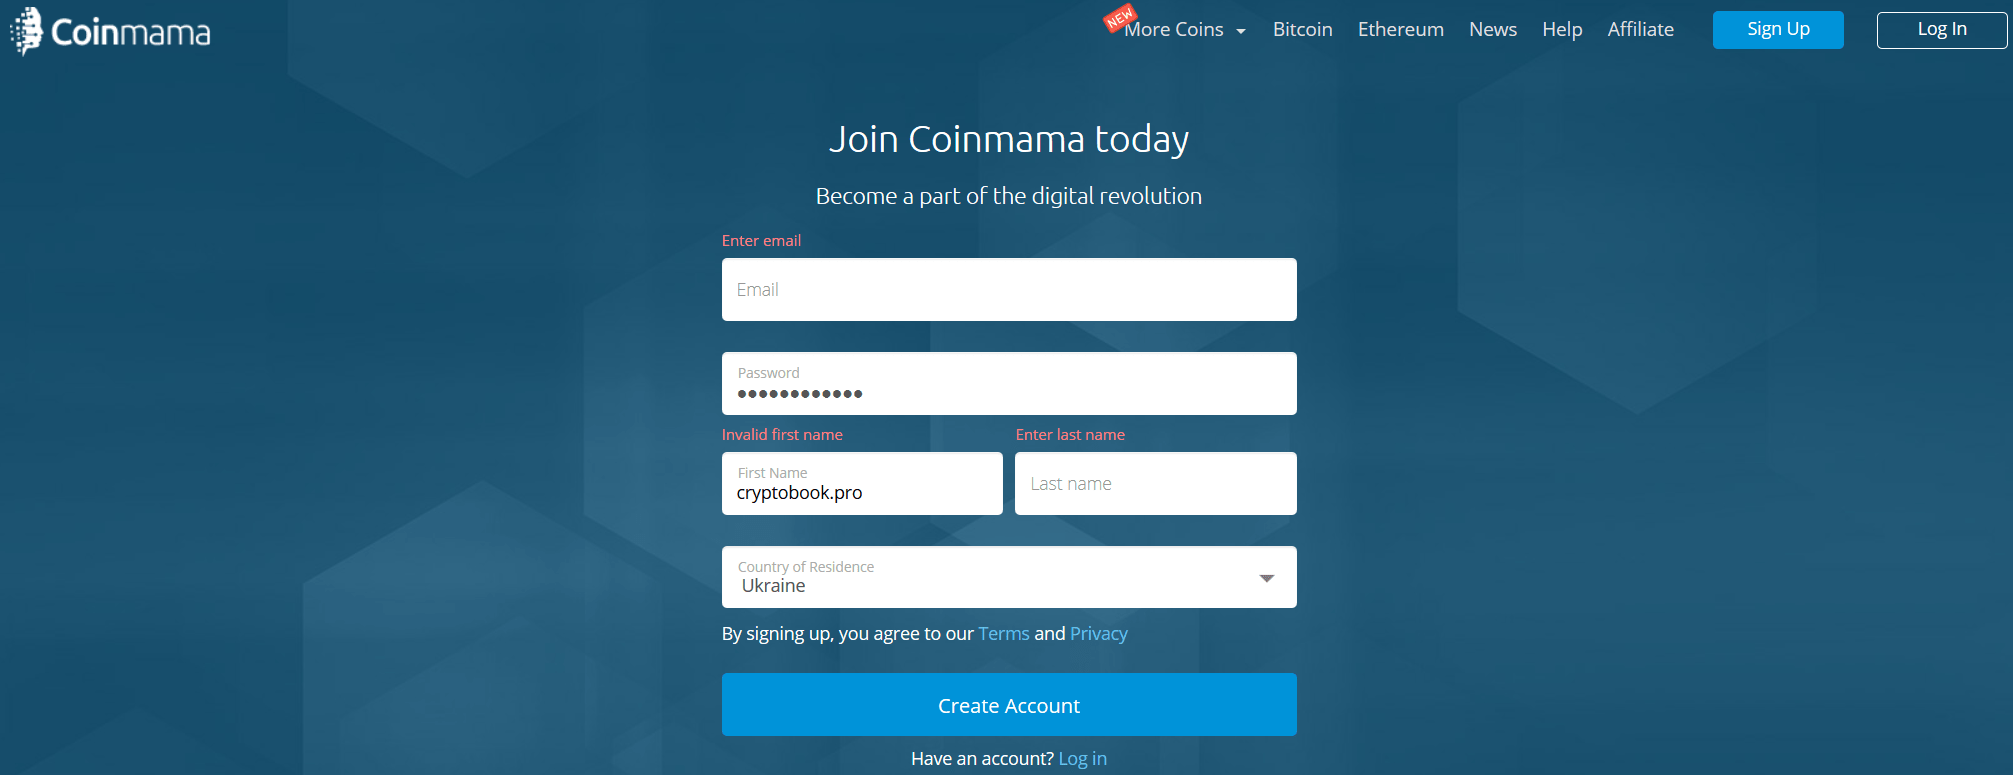 coinmama-register